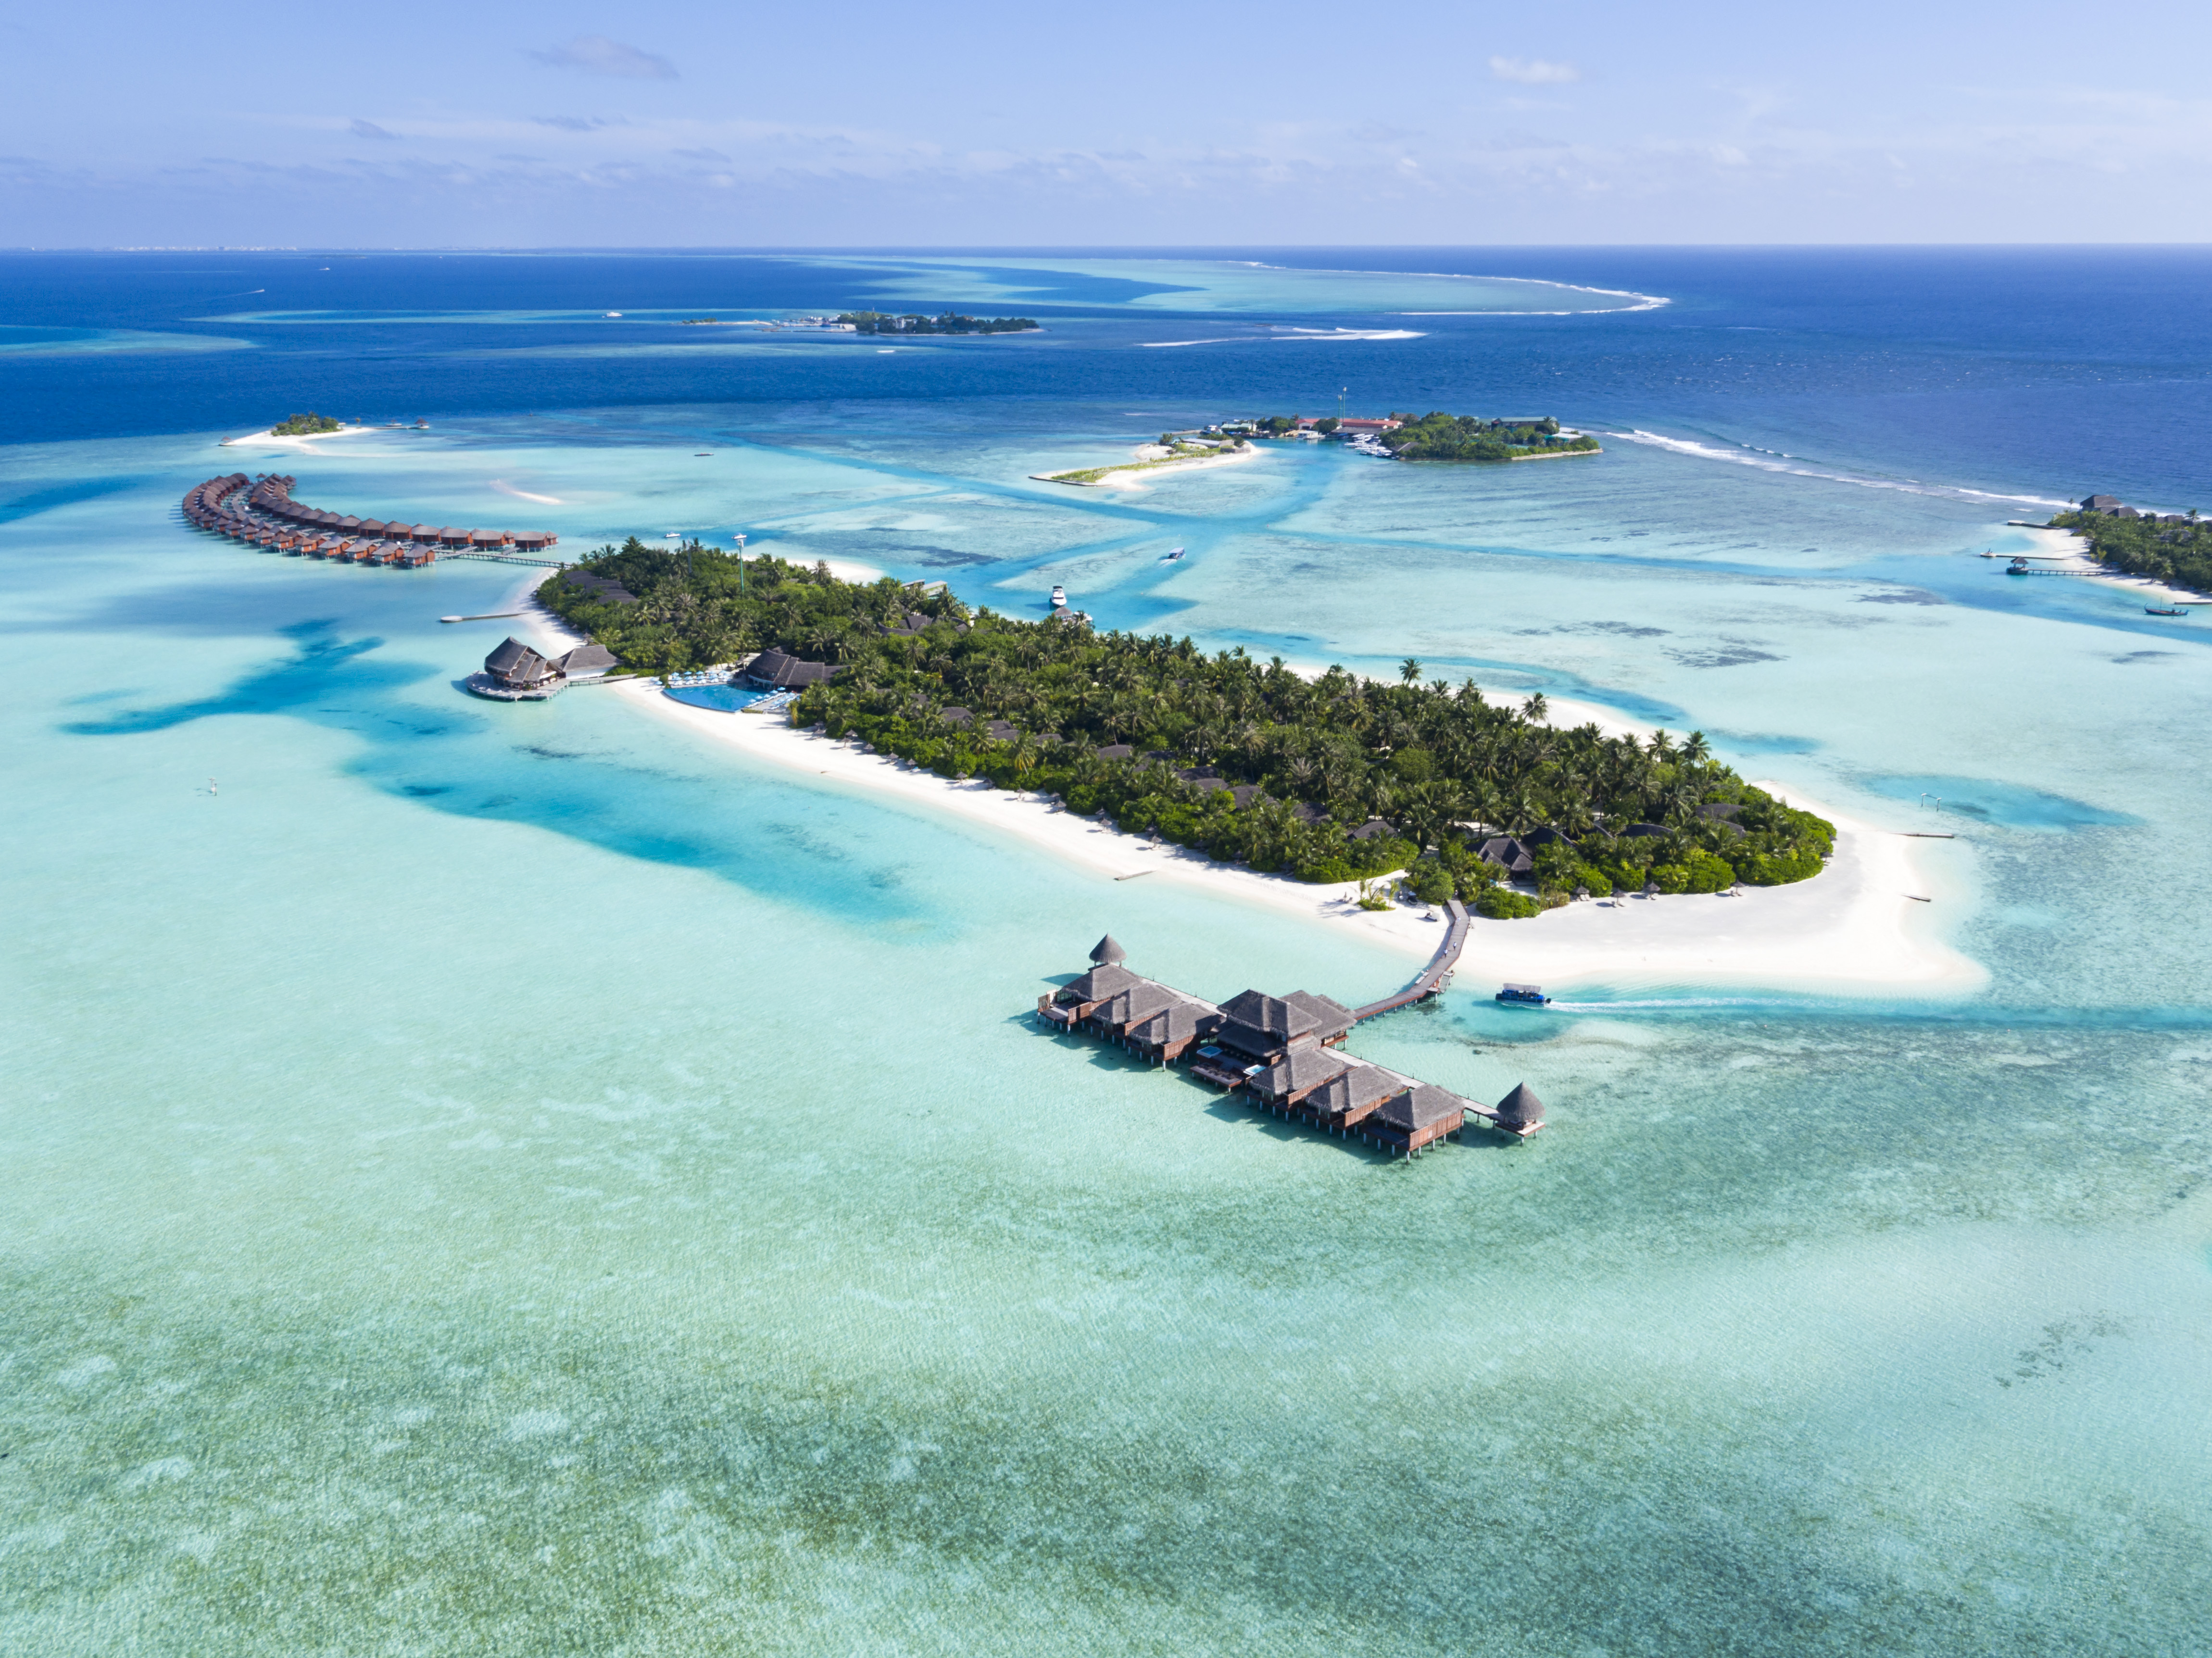 free dating sites in maldives Discover club med selection of all inclusive resorts for singles and friends explore some of the most exciting and beautiful destinations in the world.